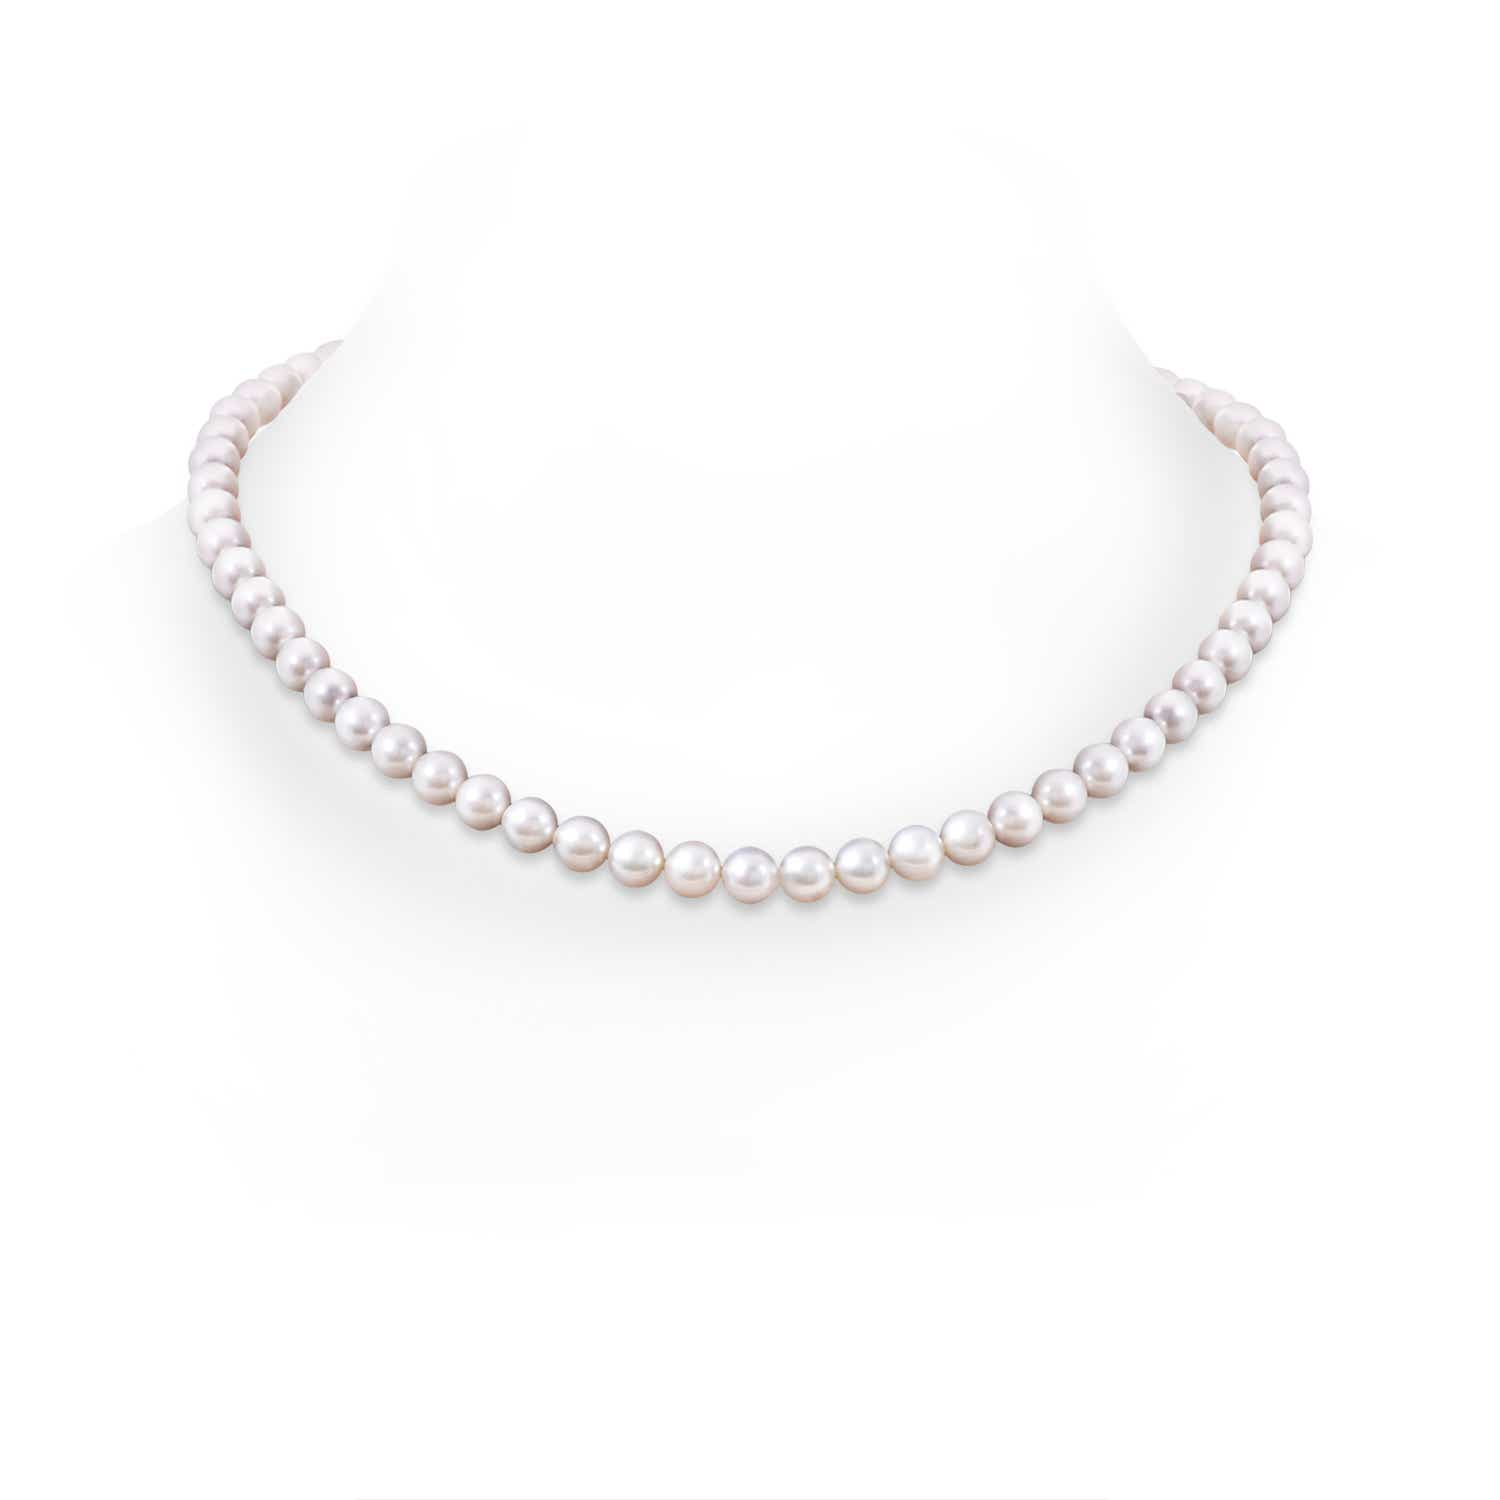 Angara 20 Akoya Cultured Pearl Double Strand Necklace 6LsLKtdtO